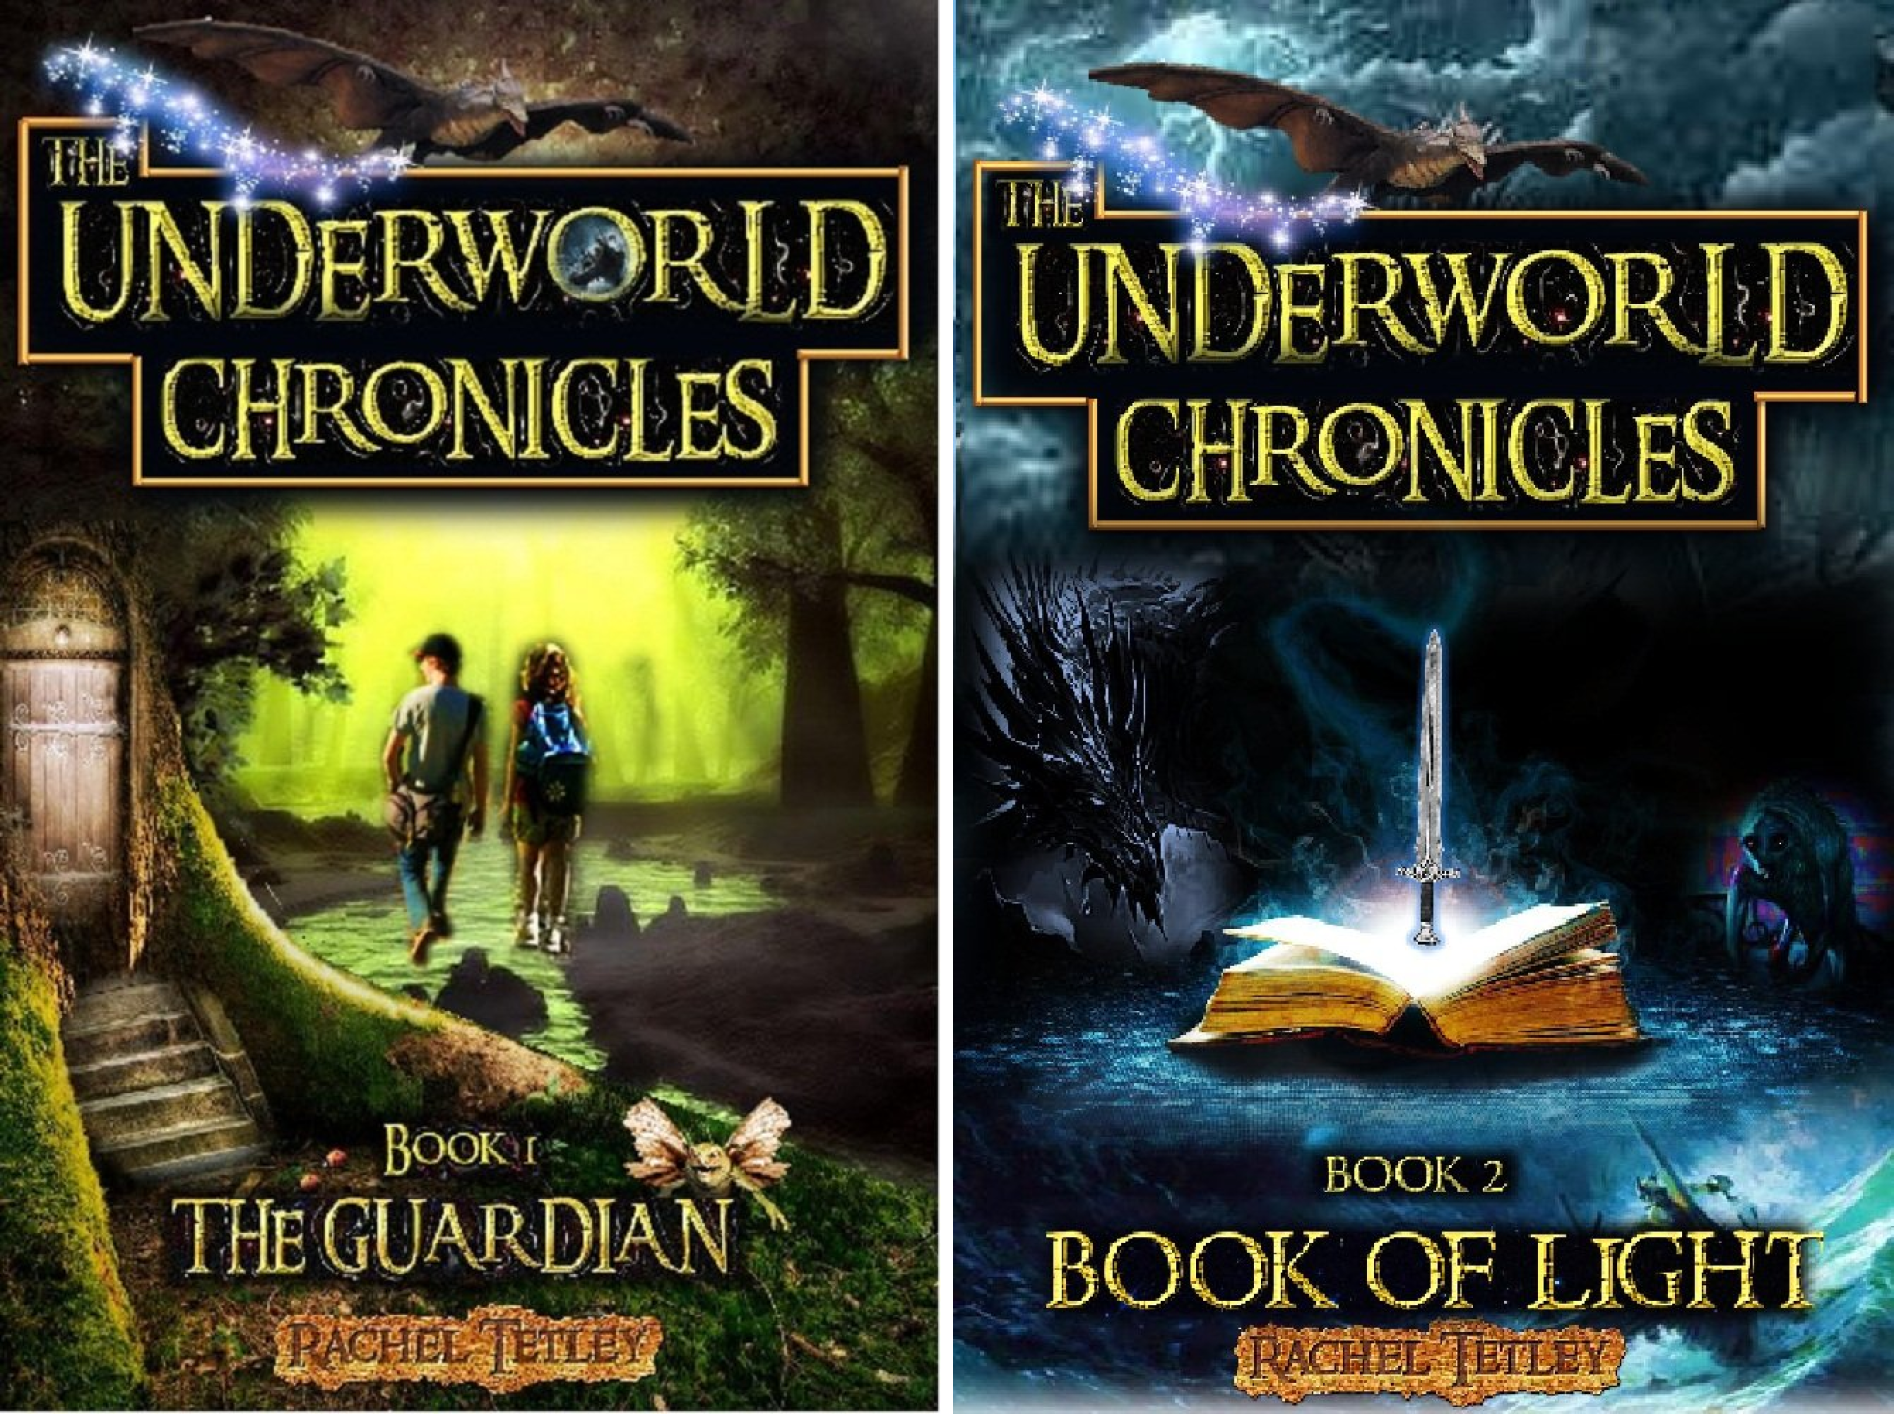 The Underworld Chronicles (2 Book Series)